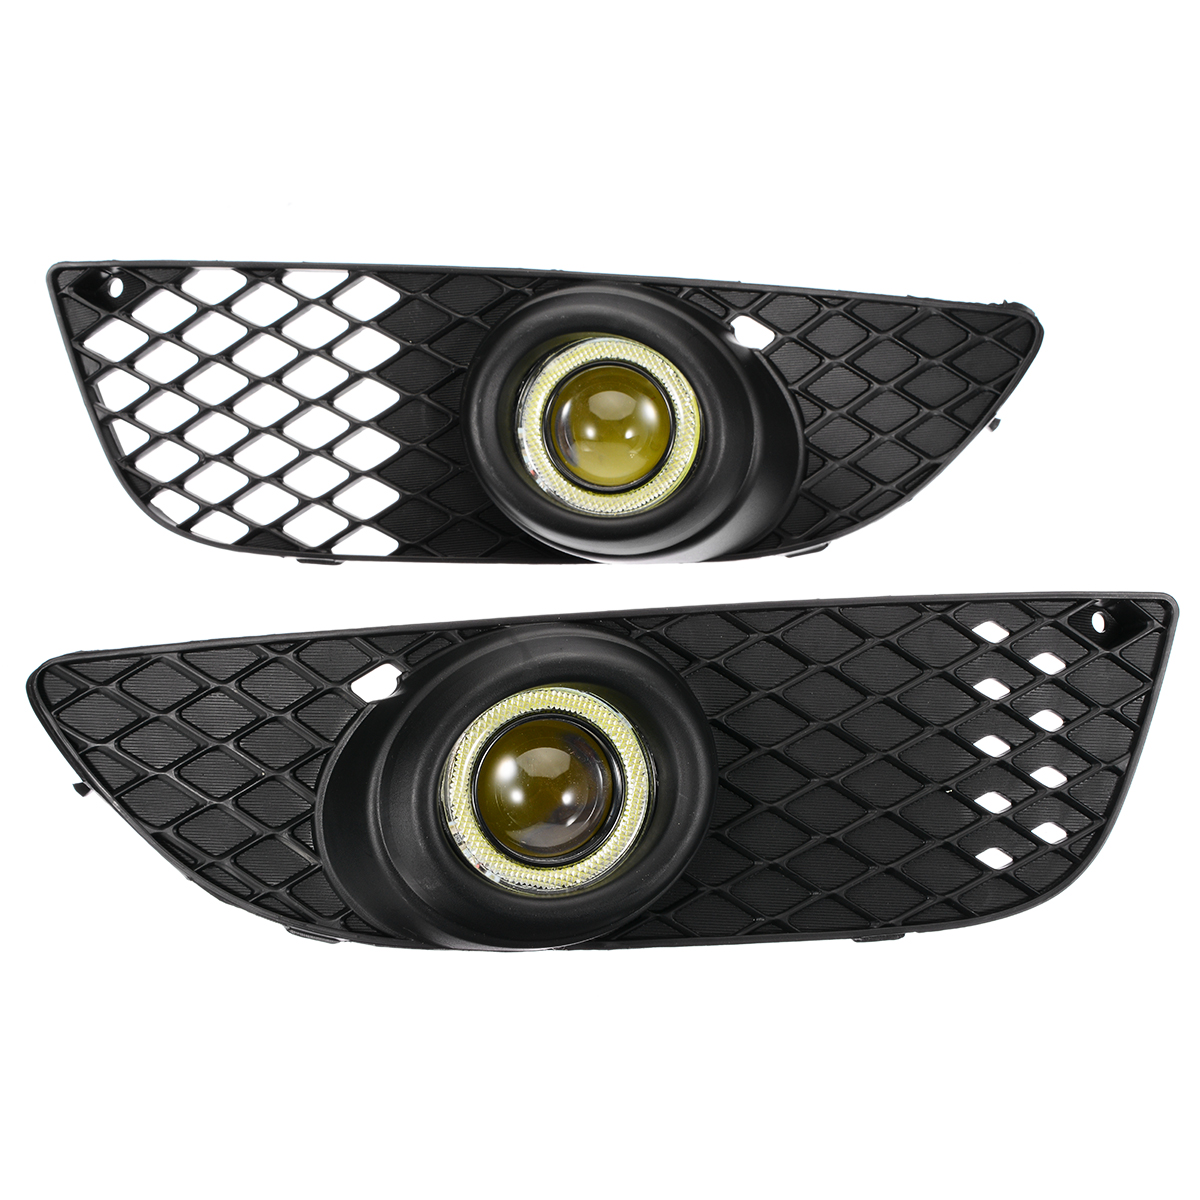 2pcs set Angel Eyes Fog Light Lamp Front Bumper Grille Driving Fog Lamp Cover For Mitsubishi Lancer 2008 2014 in Car Headlight Bulbs LED from Automobiles Motorcycles